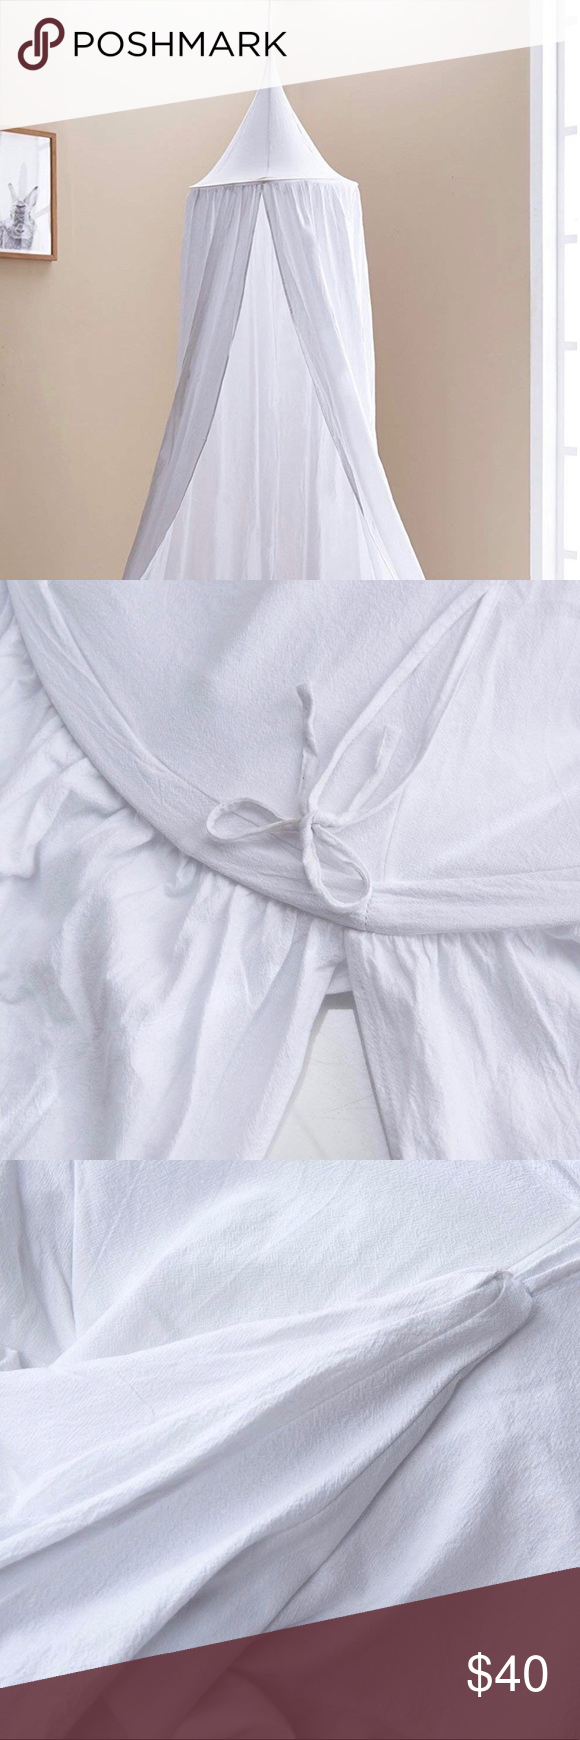 Photo of Kids Bed Canopy • White Canvas White canvas bed canopy. Thick, but soft durabl…